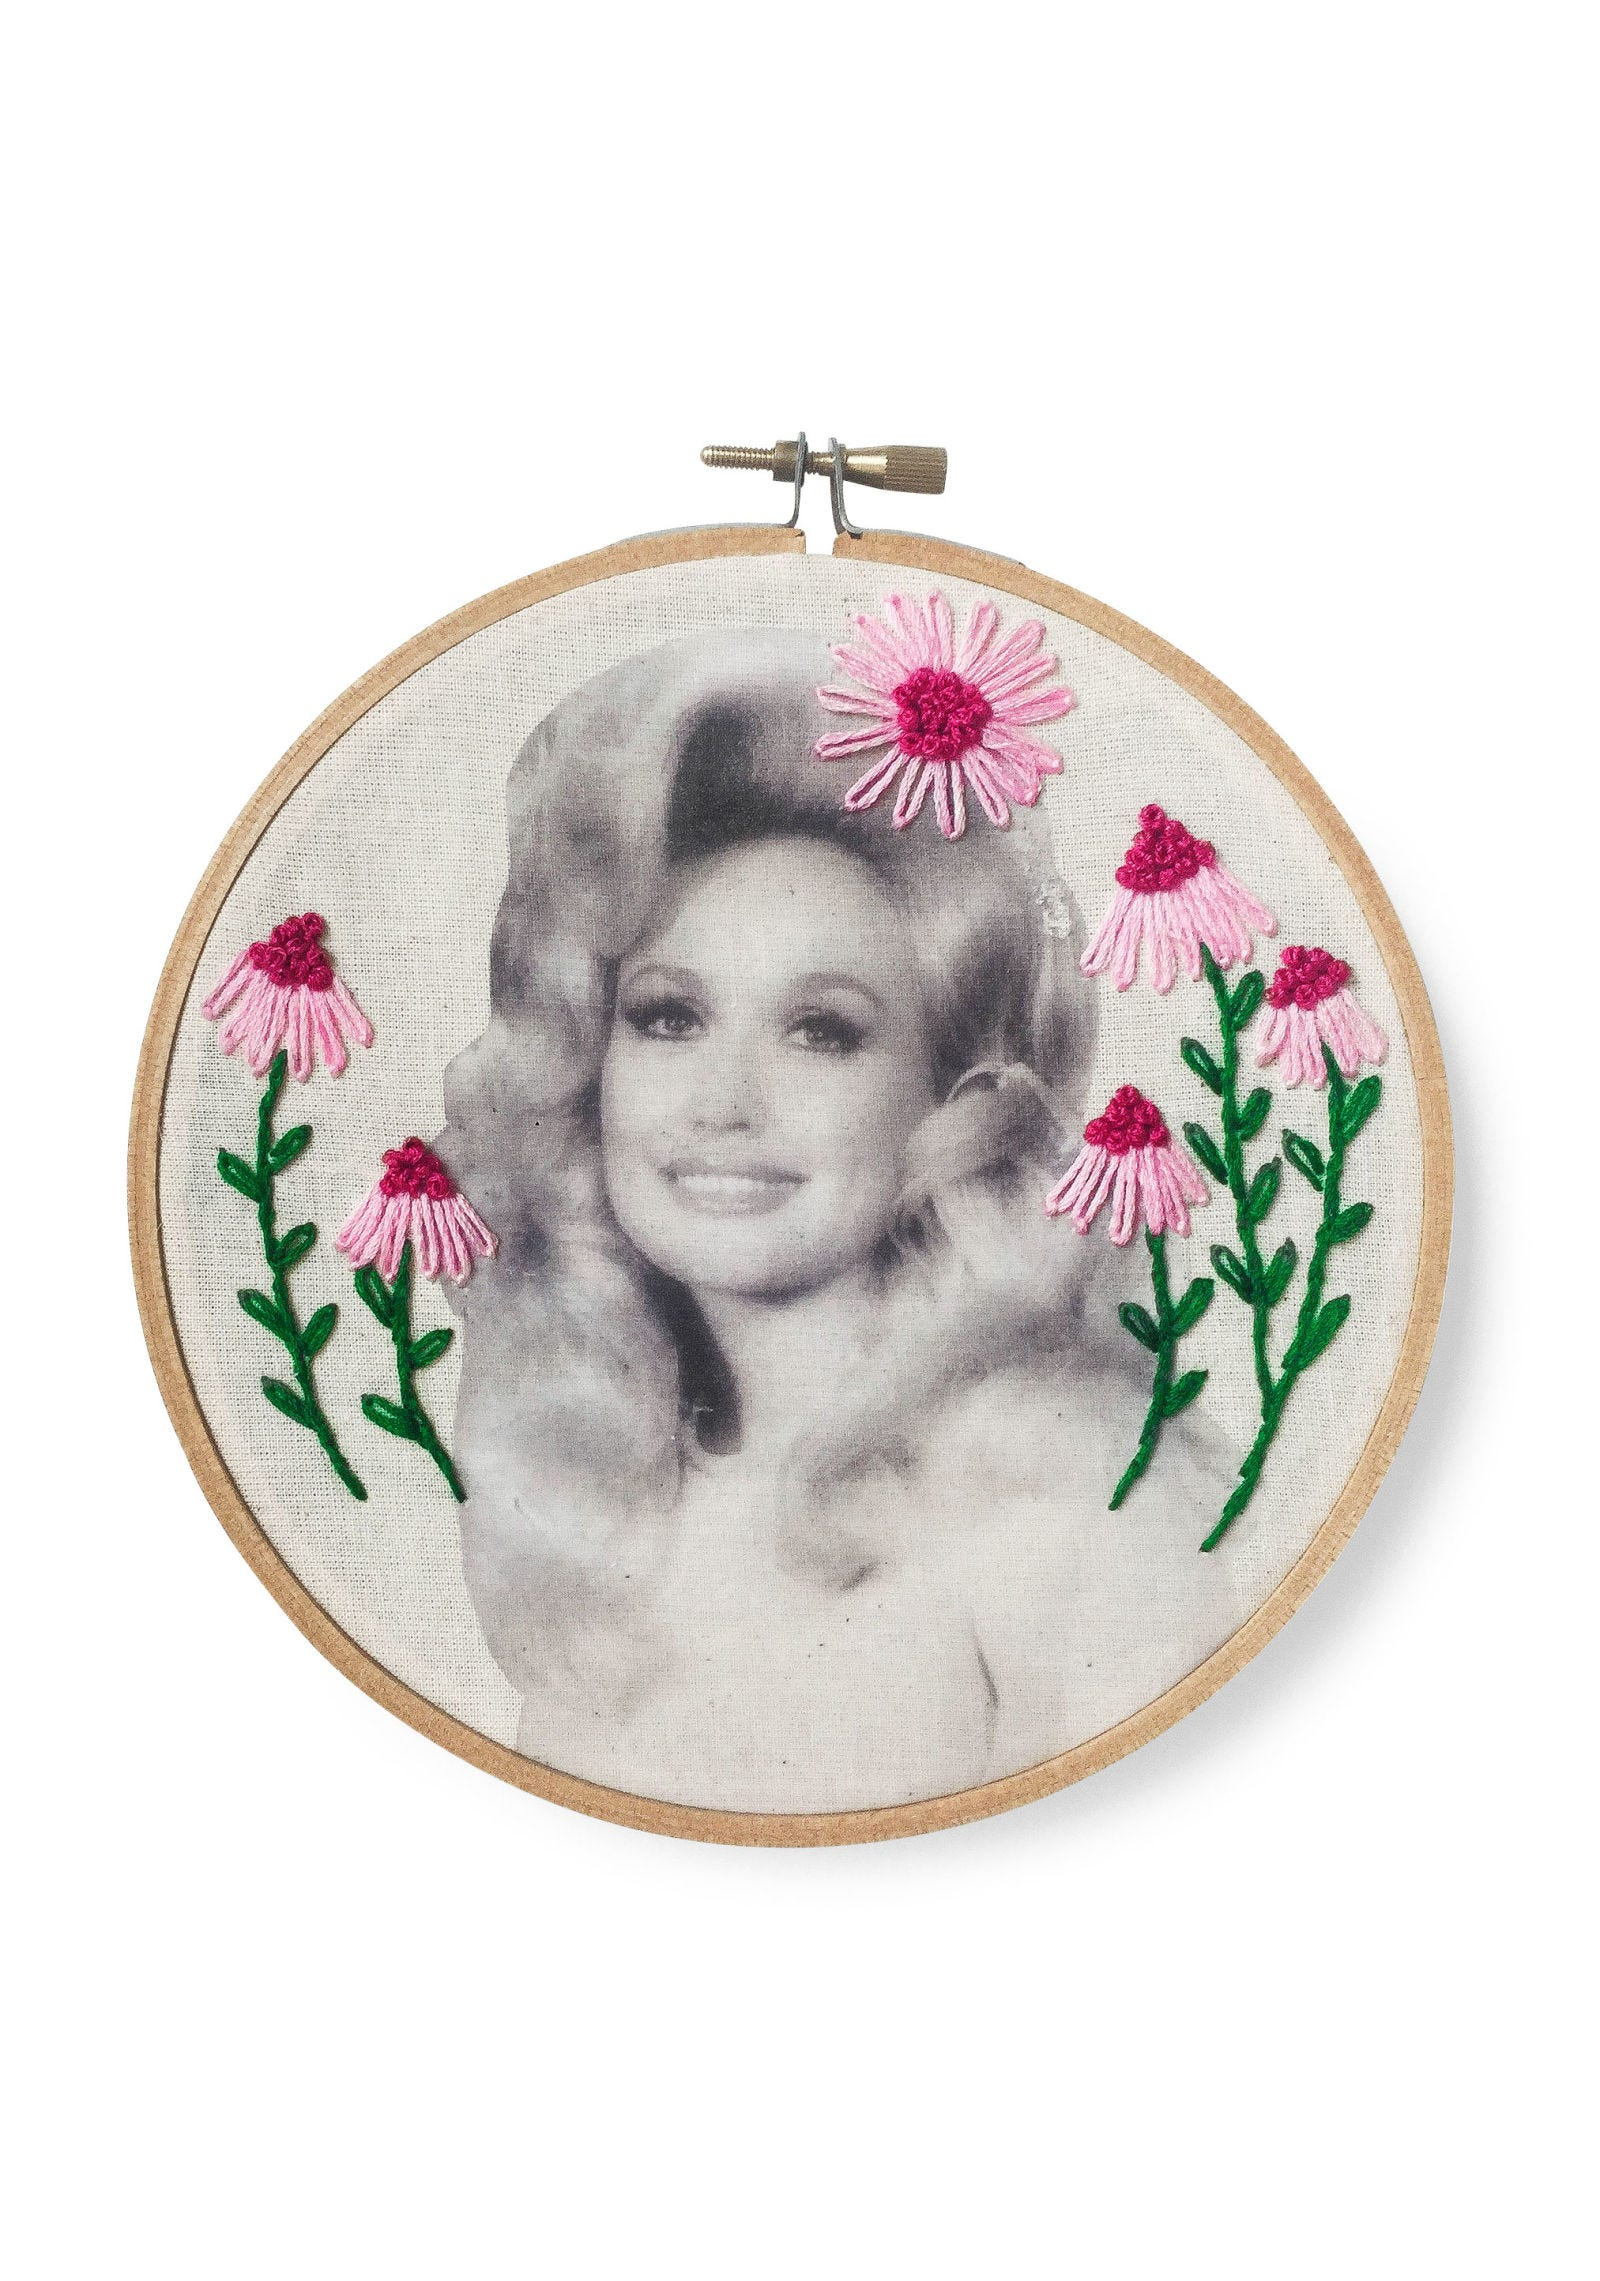 Cheek, Embroidery, Pink, Magenta, Art, Creative arts, Needlework, Circle, Craft, Cross-stitch,